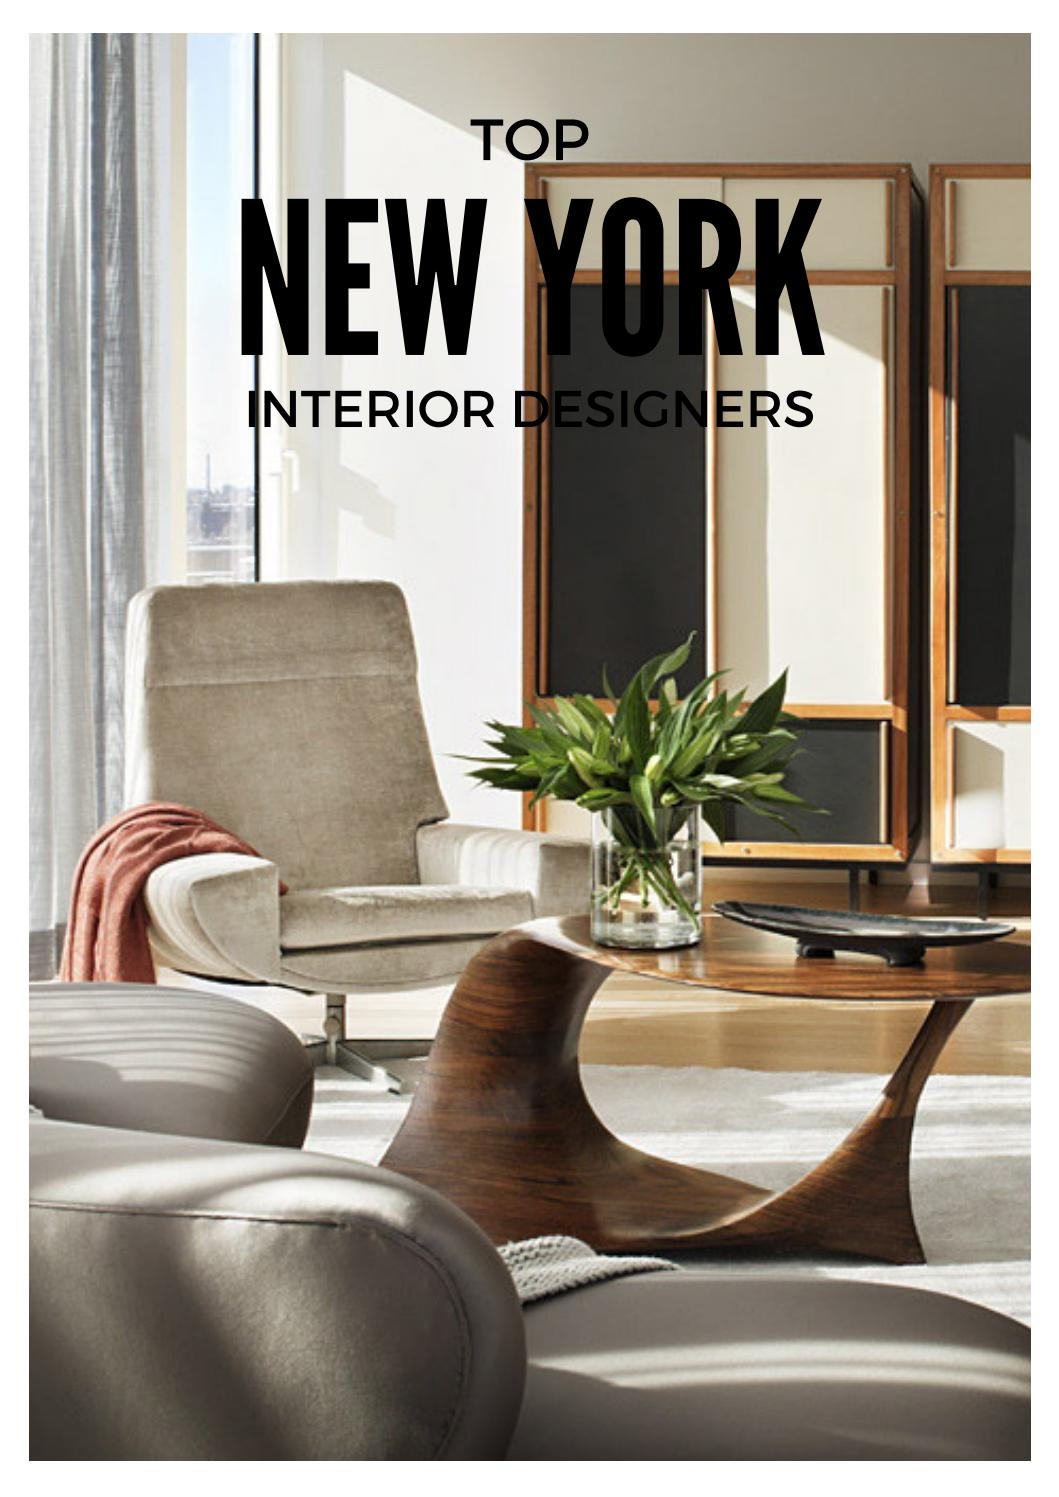 Top New York Interior Designers By Home Living Magazines Issuu